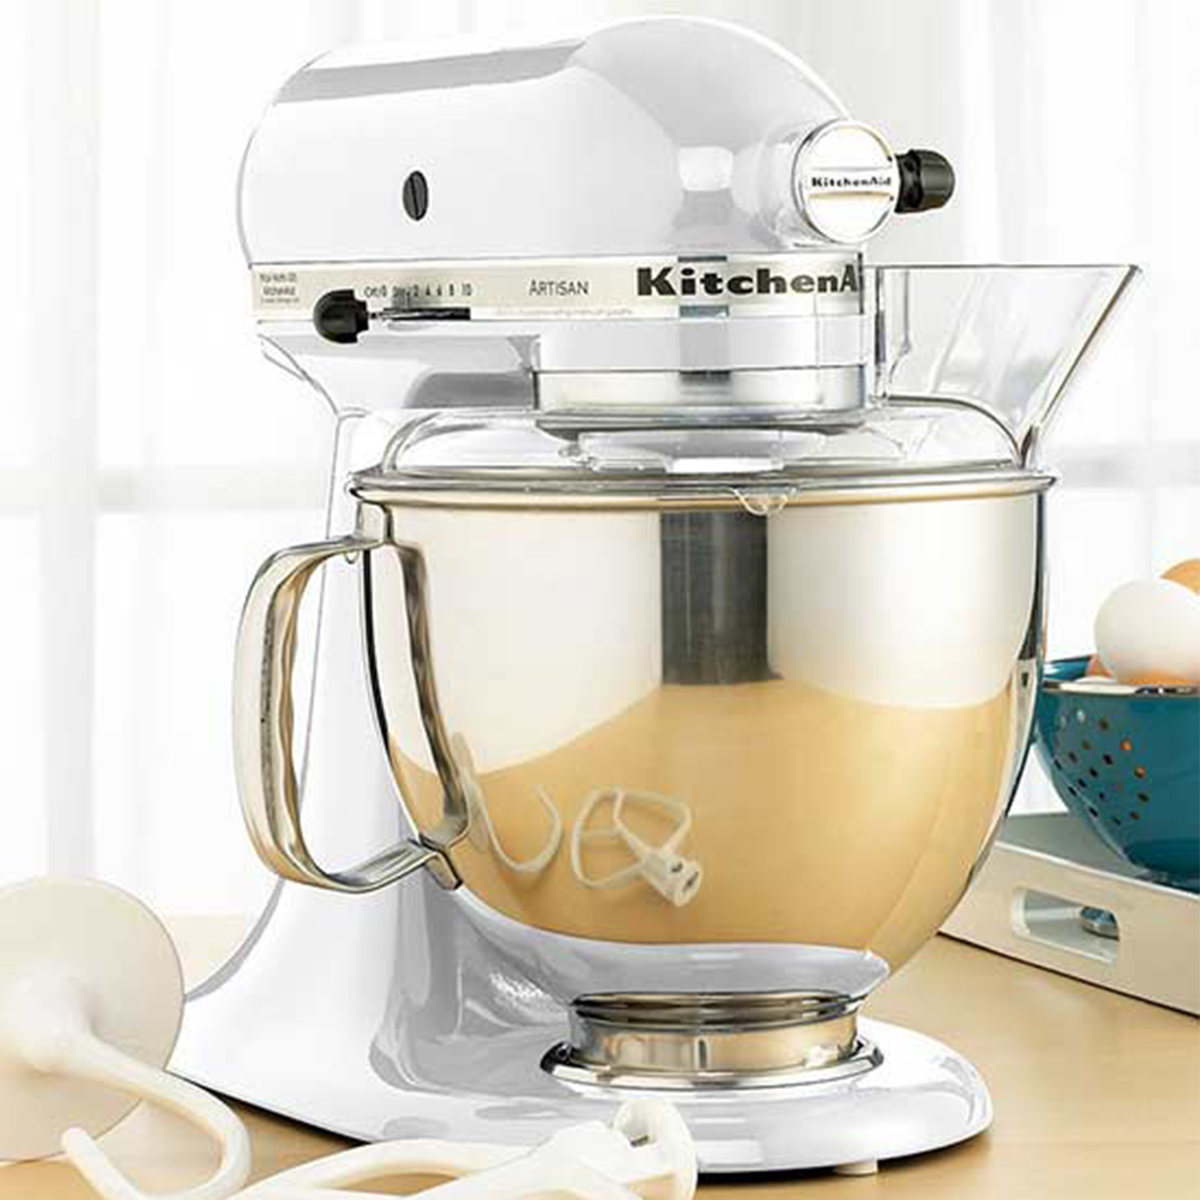 KitchenAid Stand Mixer in white with stainless-steel bowl photo